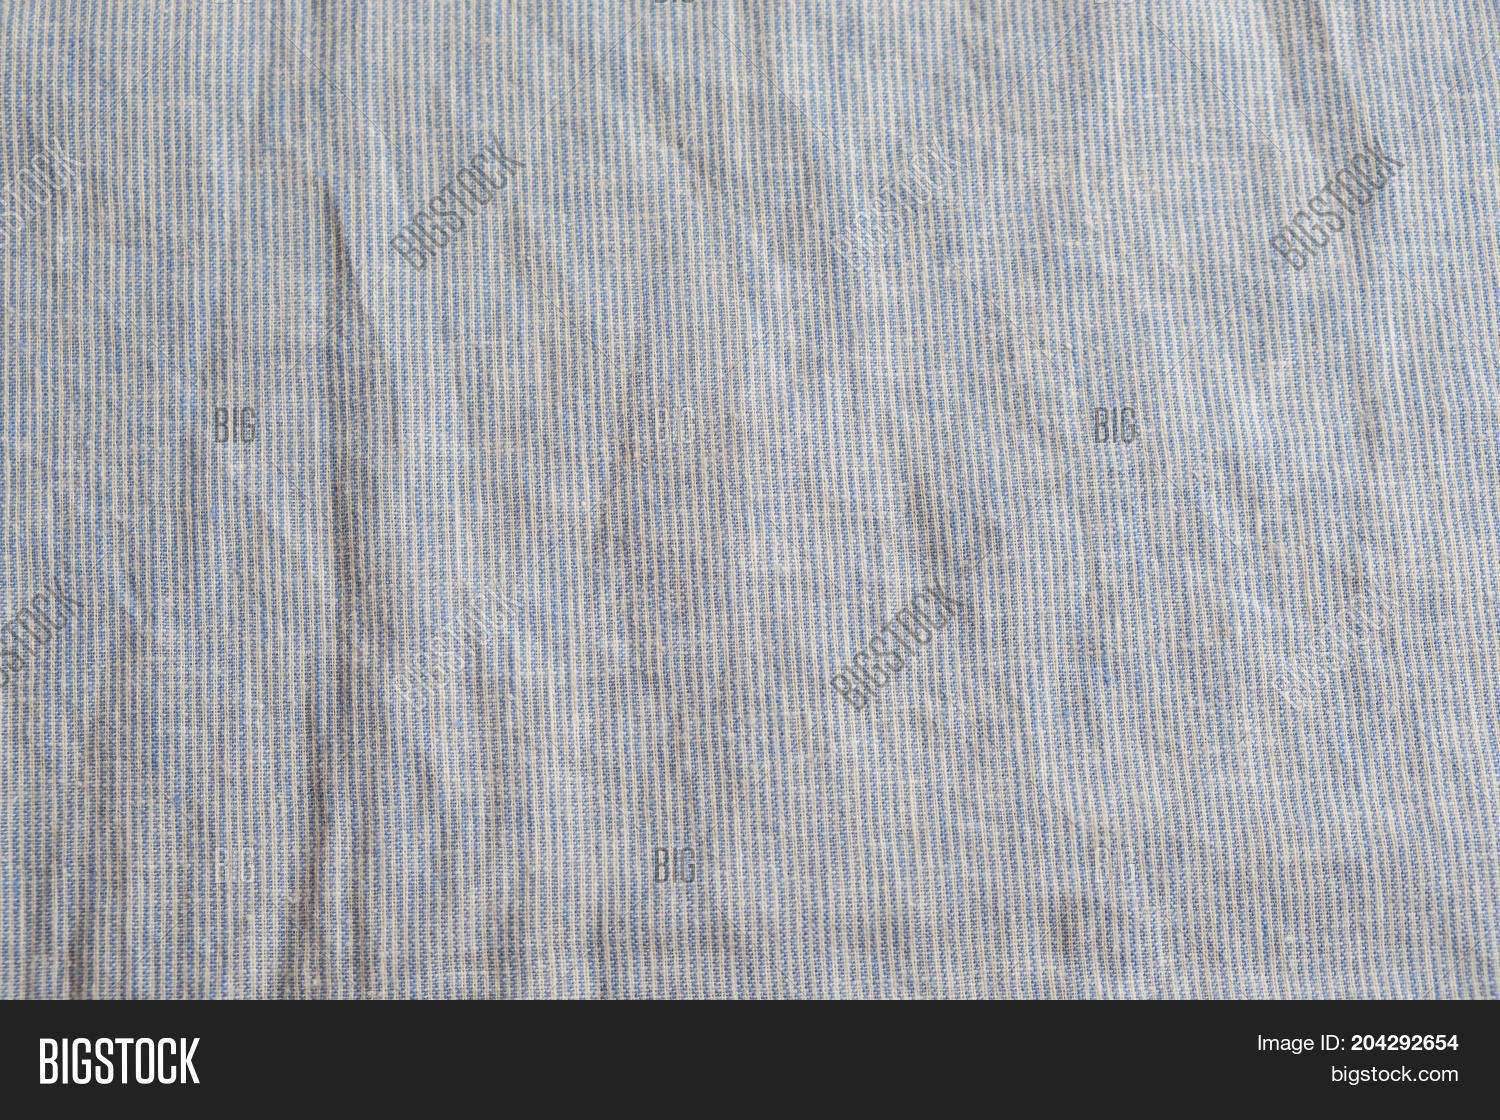 d84fdb2daa5 Grey heather texture. Grey fabric texture. Background with delicate striped  pattern. Real heather grey knitted fabric made of synthetic fibres textured  ...